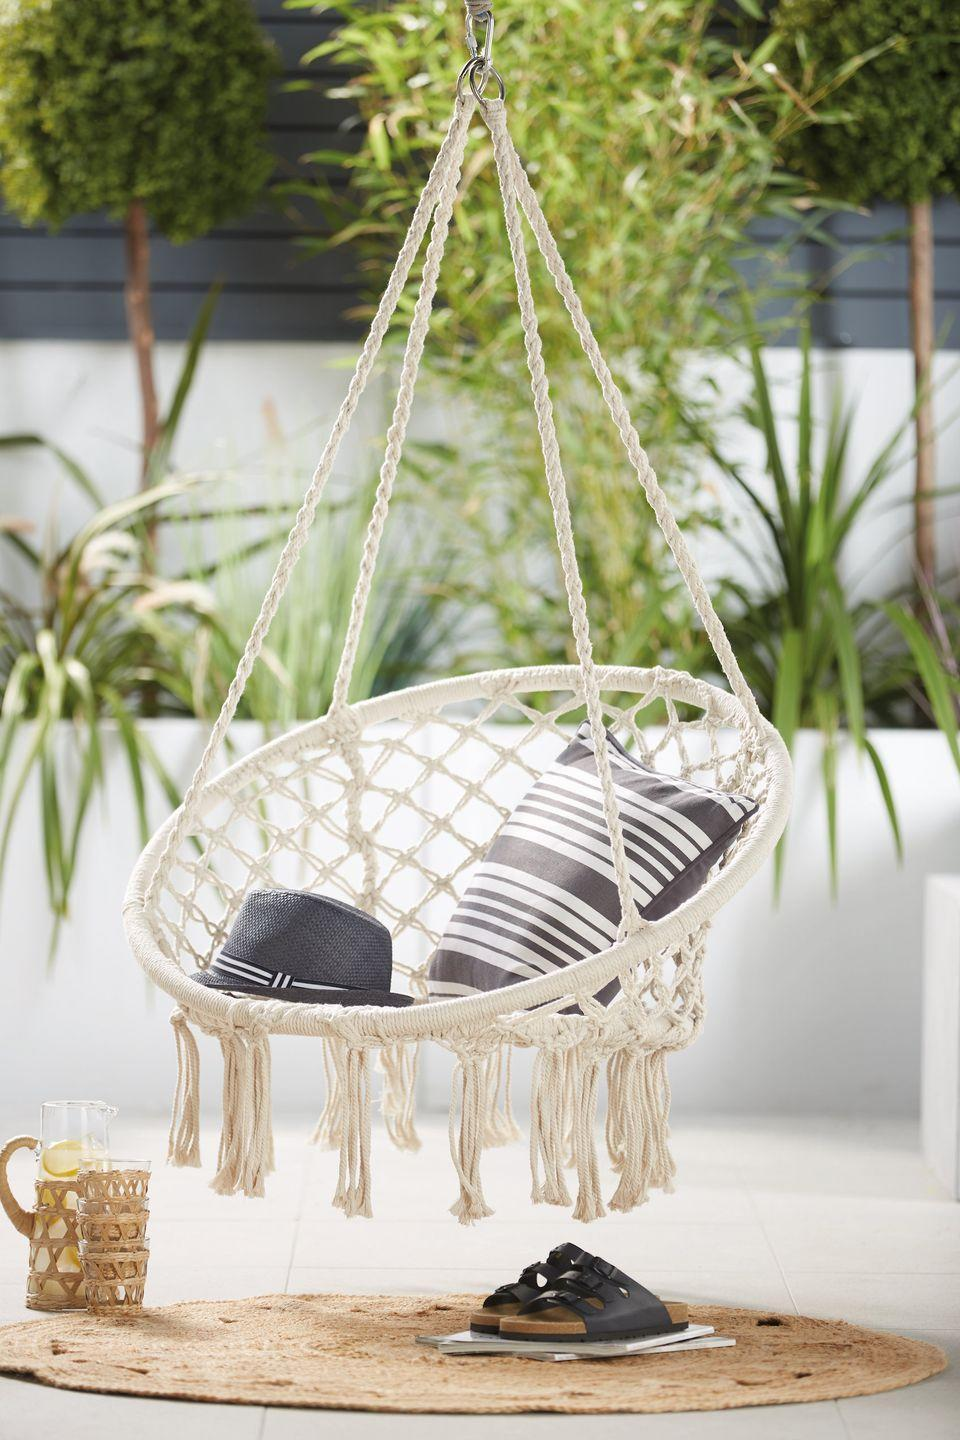 """<p>We're crushing on this stylish hanging rope seat, which shoppers can snap up for just £40.</p><p>'""""Continue the celeb feel and get the Mrs Hinch look for less with our brand-new Hanging Rope Seat (£39.99), perfect for a spot of evening relaxation,"""" the German supermarket says. """"Shoppers can even save over 54% compared to leading retailers including Wayfair.""""</p><p><a class=""""link rapid-noclick-resp"""" href=""""https://www.aldi.co.uk/c/specialbuys/garden-shop"""" rel=""""nofollow noopener"""" target=""""_blank"""" data-ylk=""""slk:SHOP NOW"""">SHOP NOW</a></p>"""